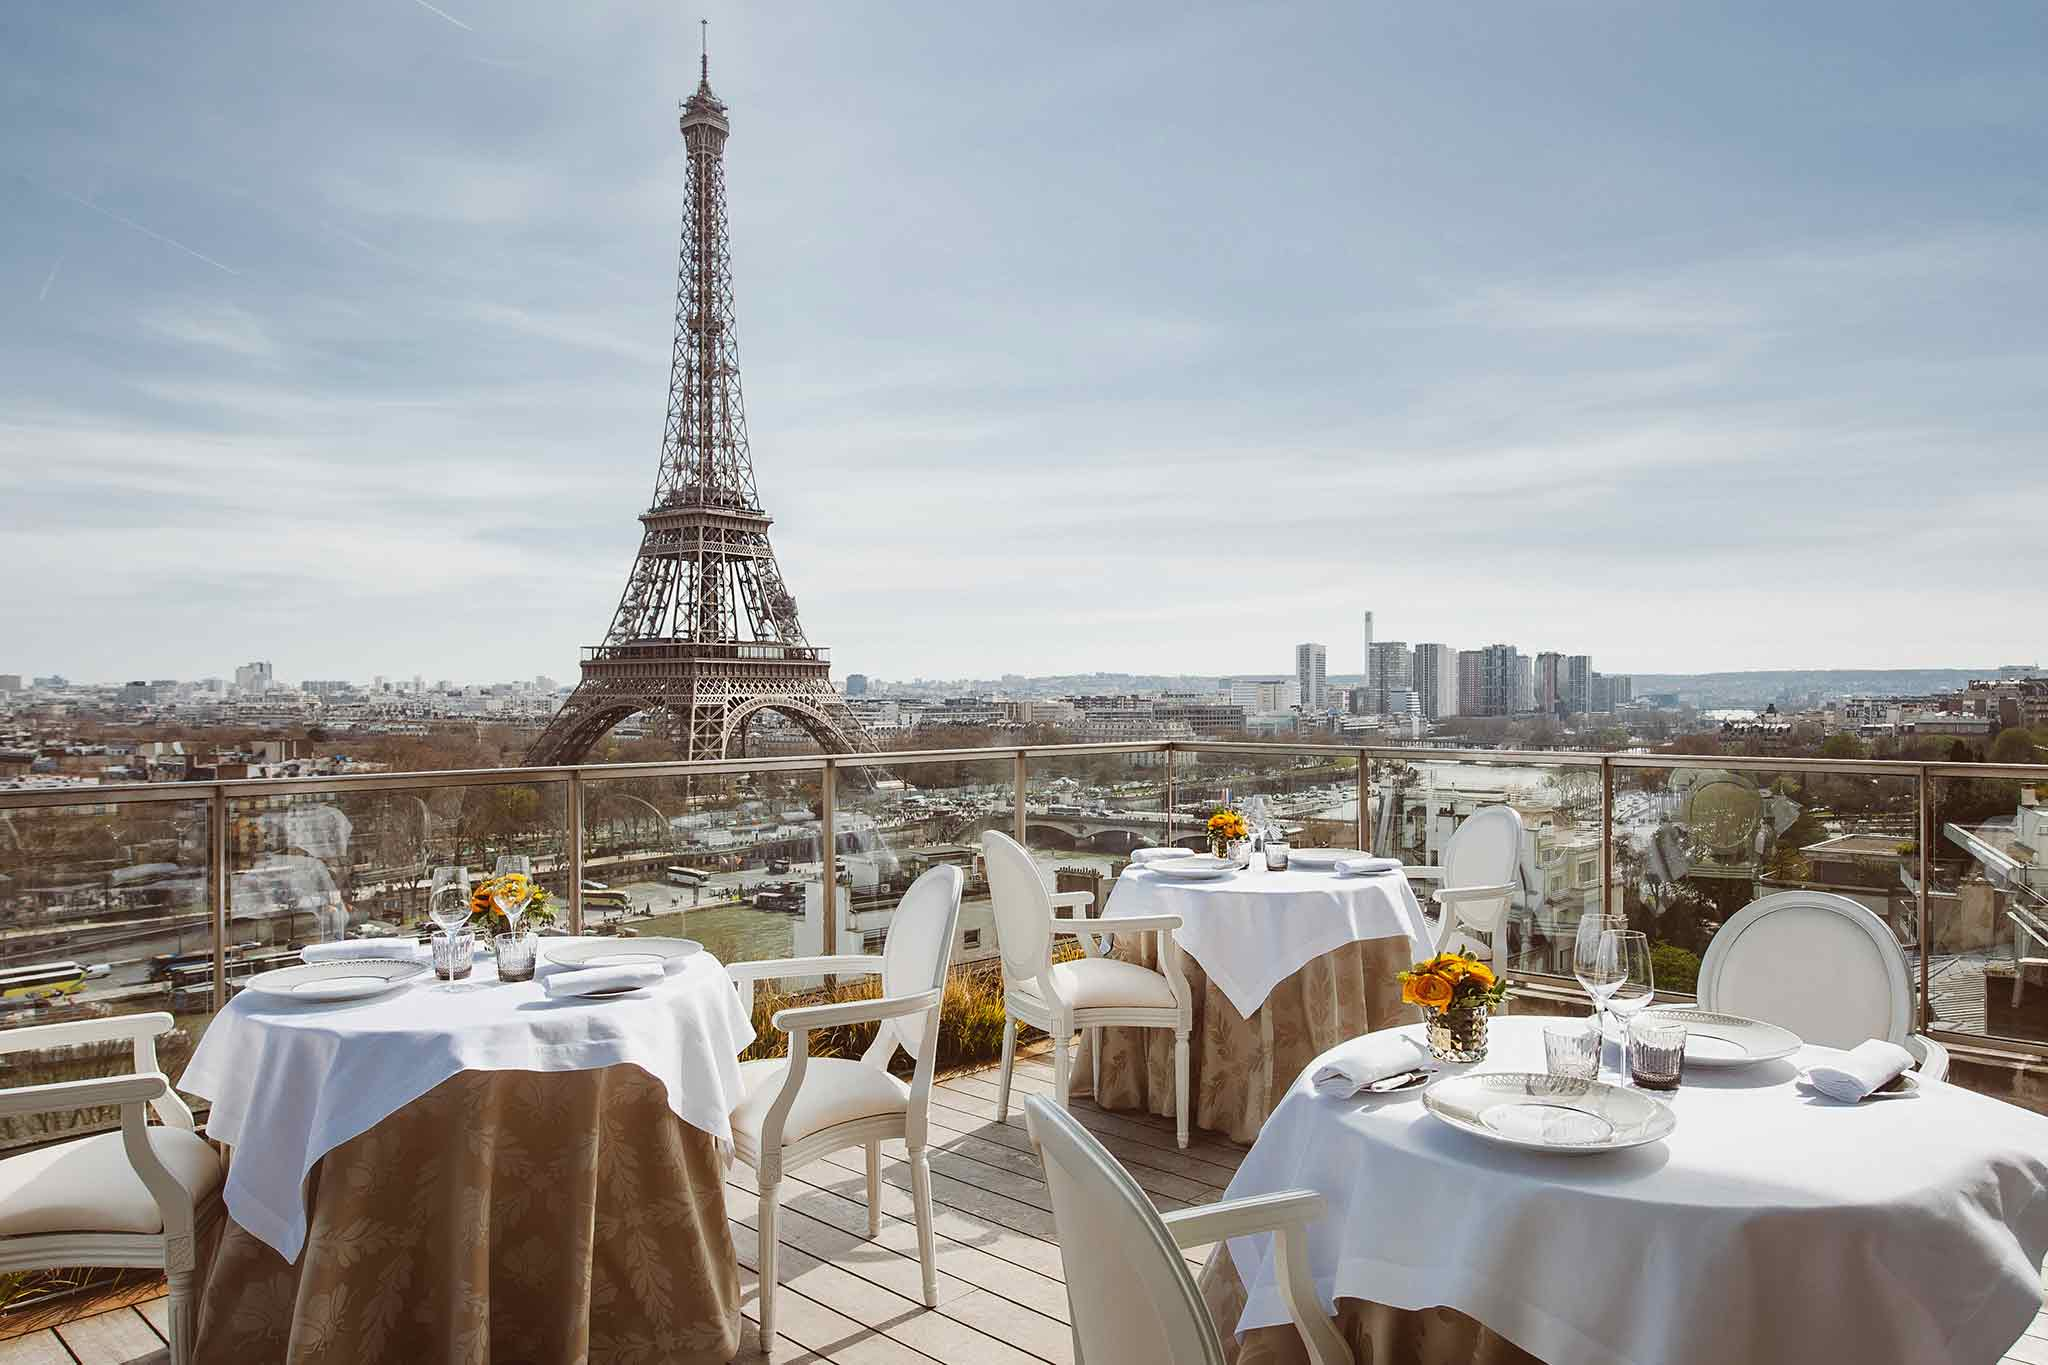 Get Ready To A Fine Dining Experience In Paris 2 Fine Dining Experience In Paris Get Ready To A Fine Dining Experience In Paris Get Ready To A Fine Dining Experience In Paris 2